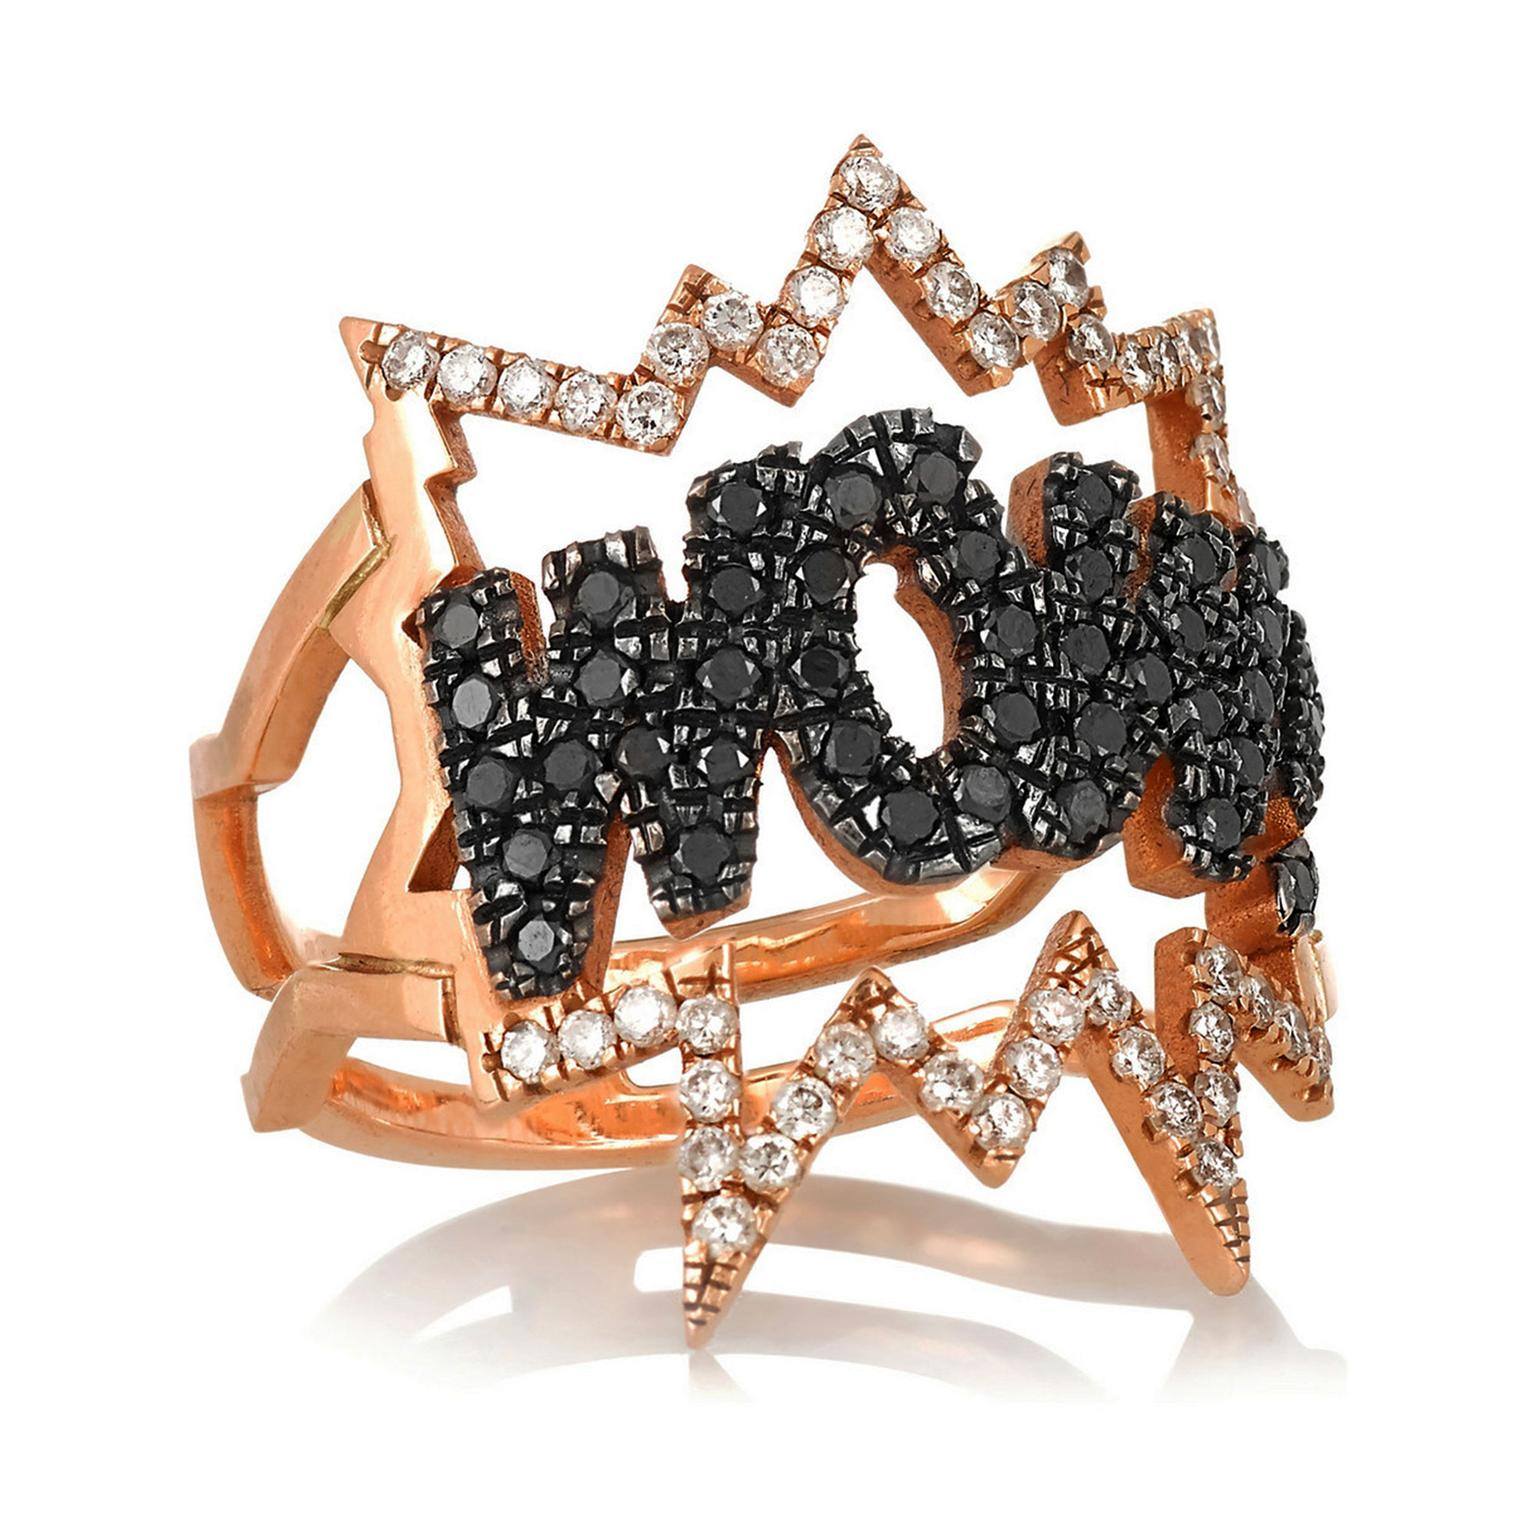 Diane Kordas diamond and gold WOW ring